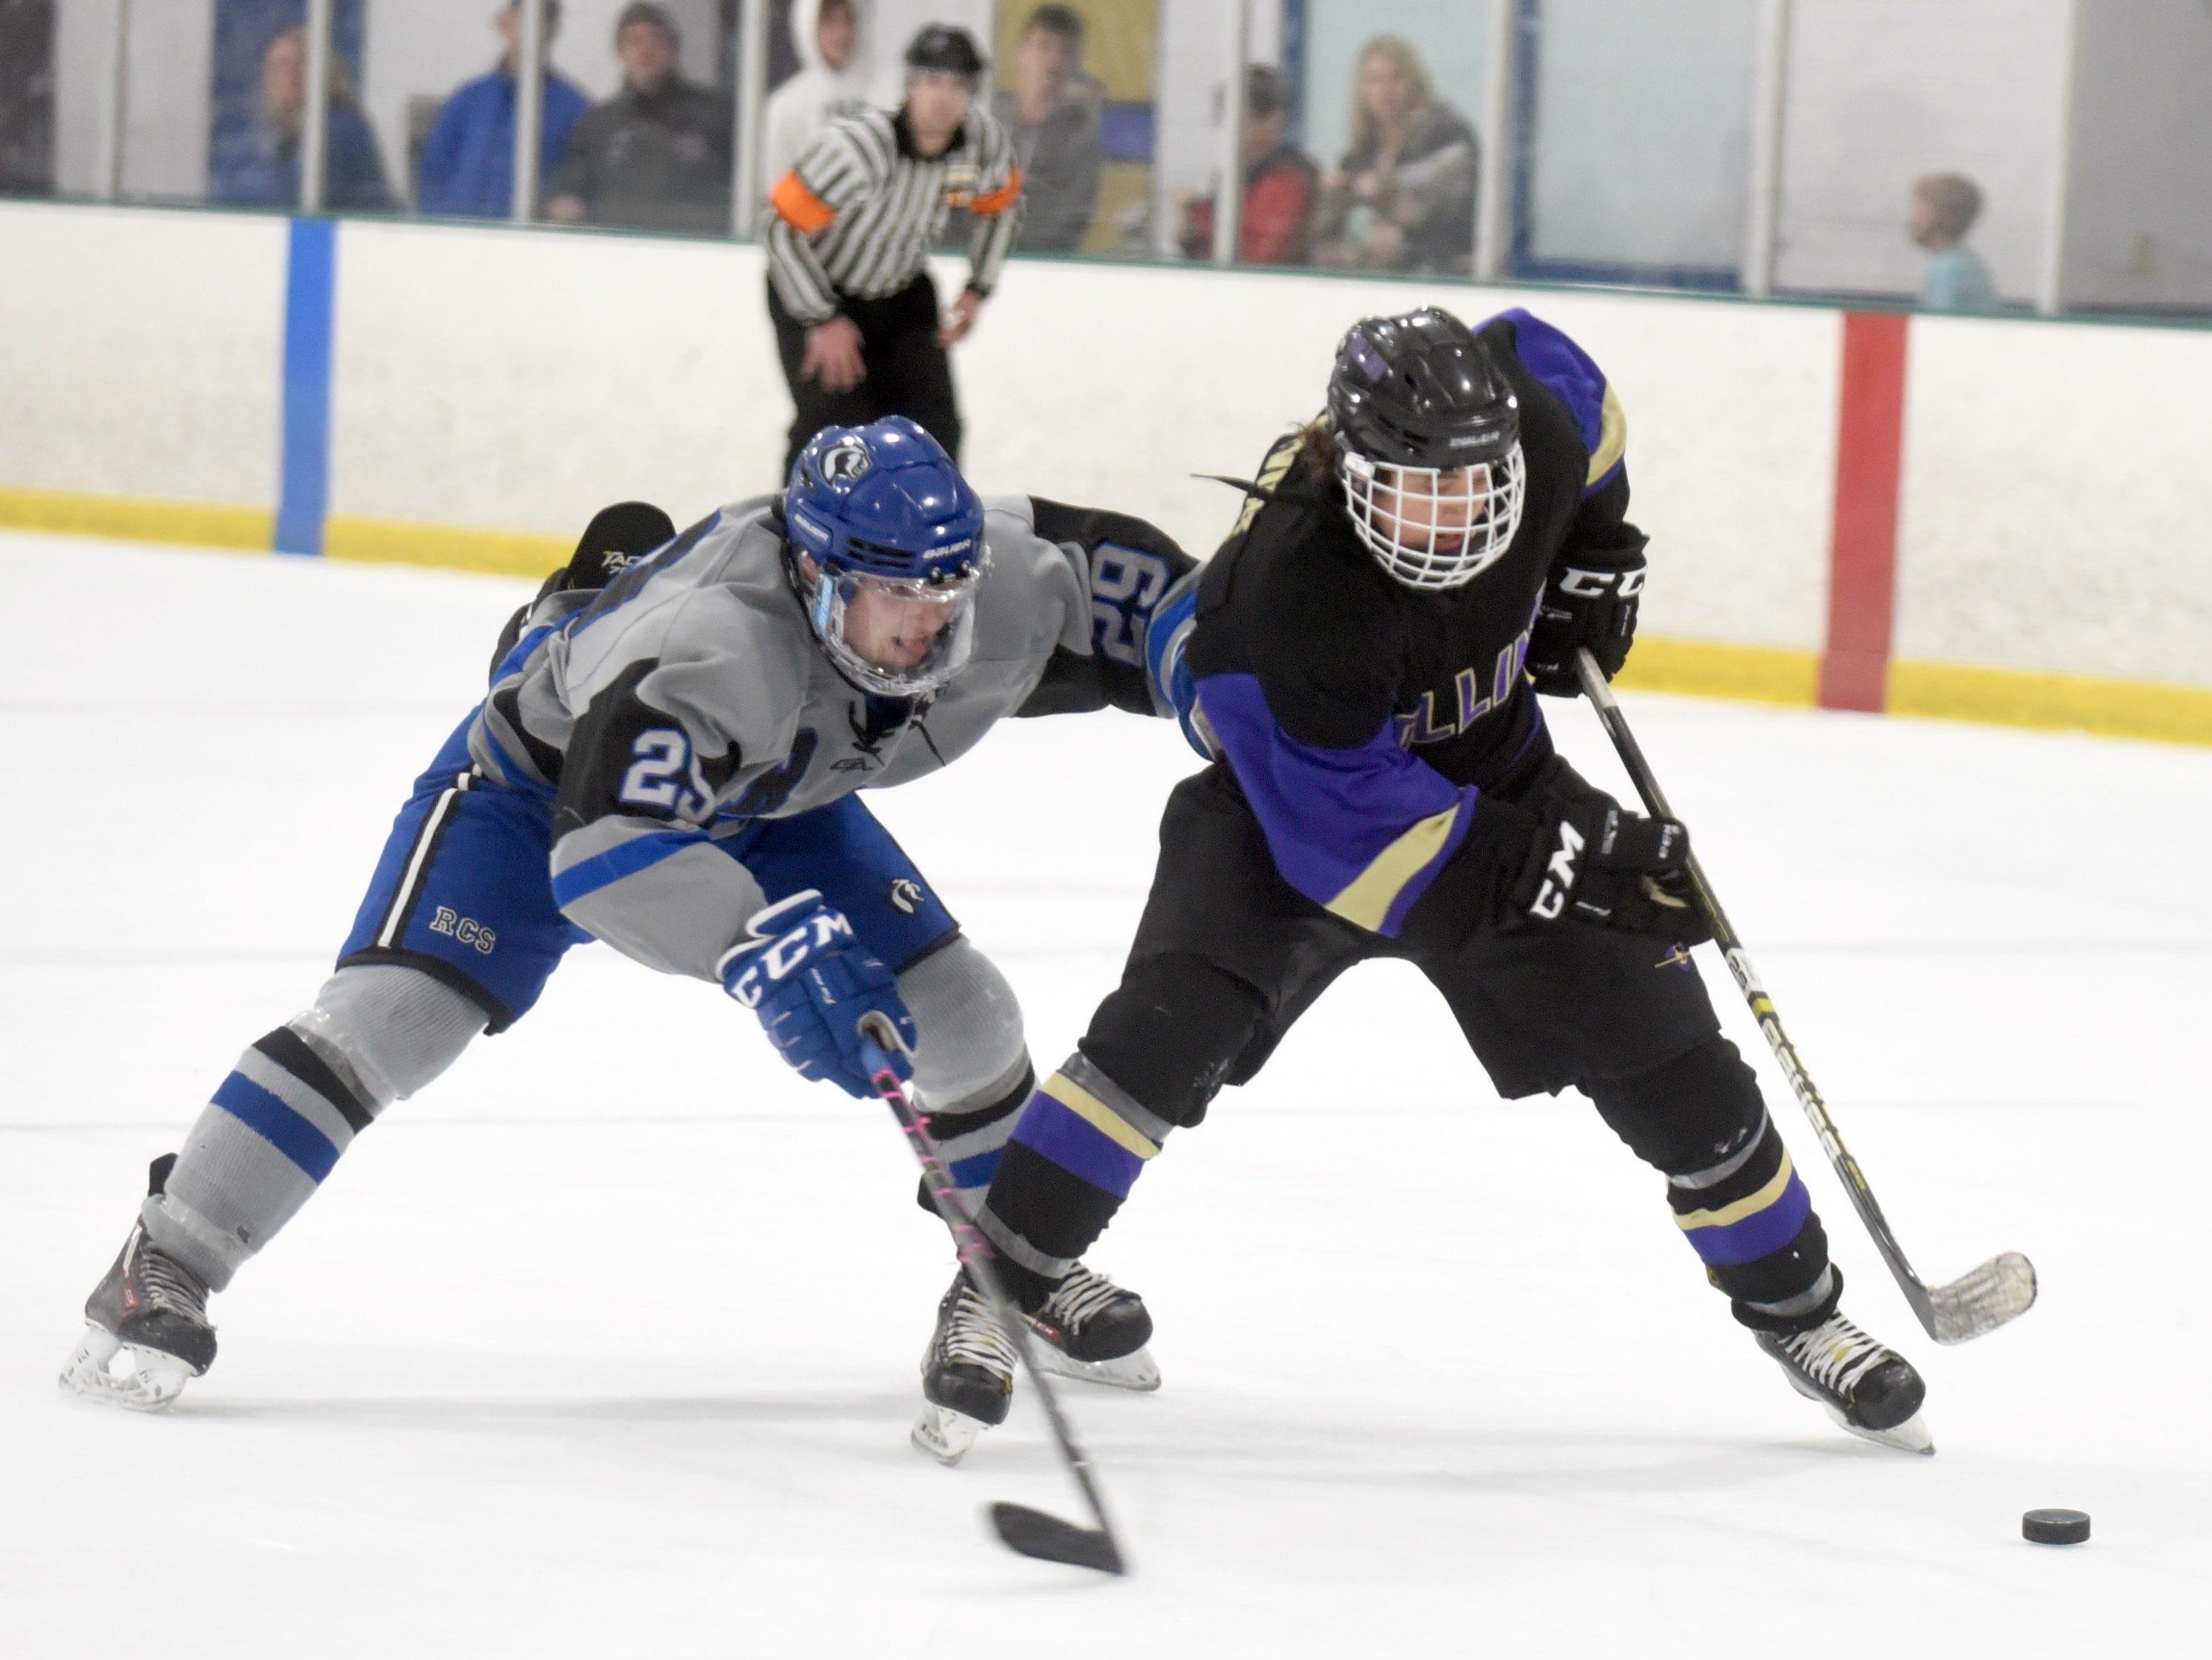 Resurrection Christian's Michael Lewis tries to catch up to Fort Collins' Nolan Devine during the game on Saturday at, Feb 2, at NoCo Ice Center, 7900 N Fairgrounds Ave, in Fort Collins.